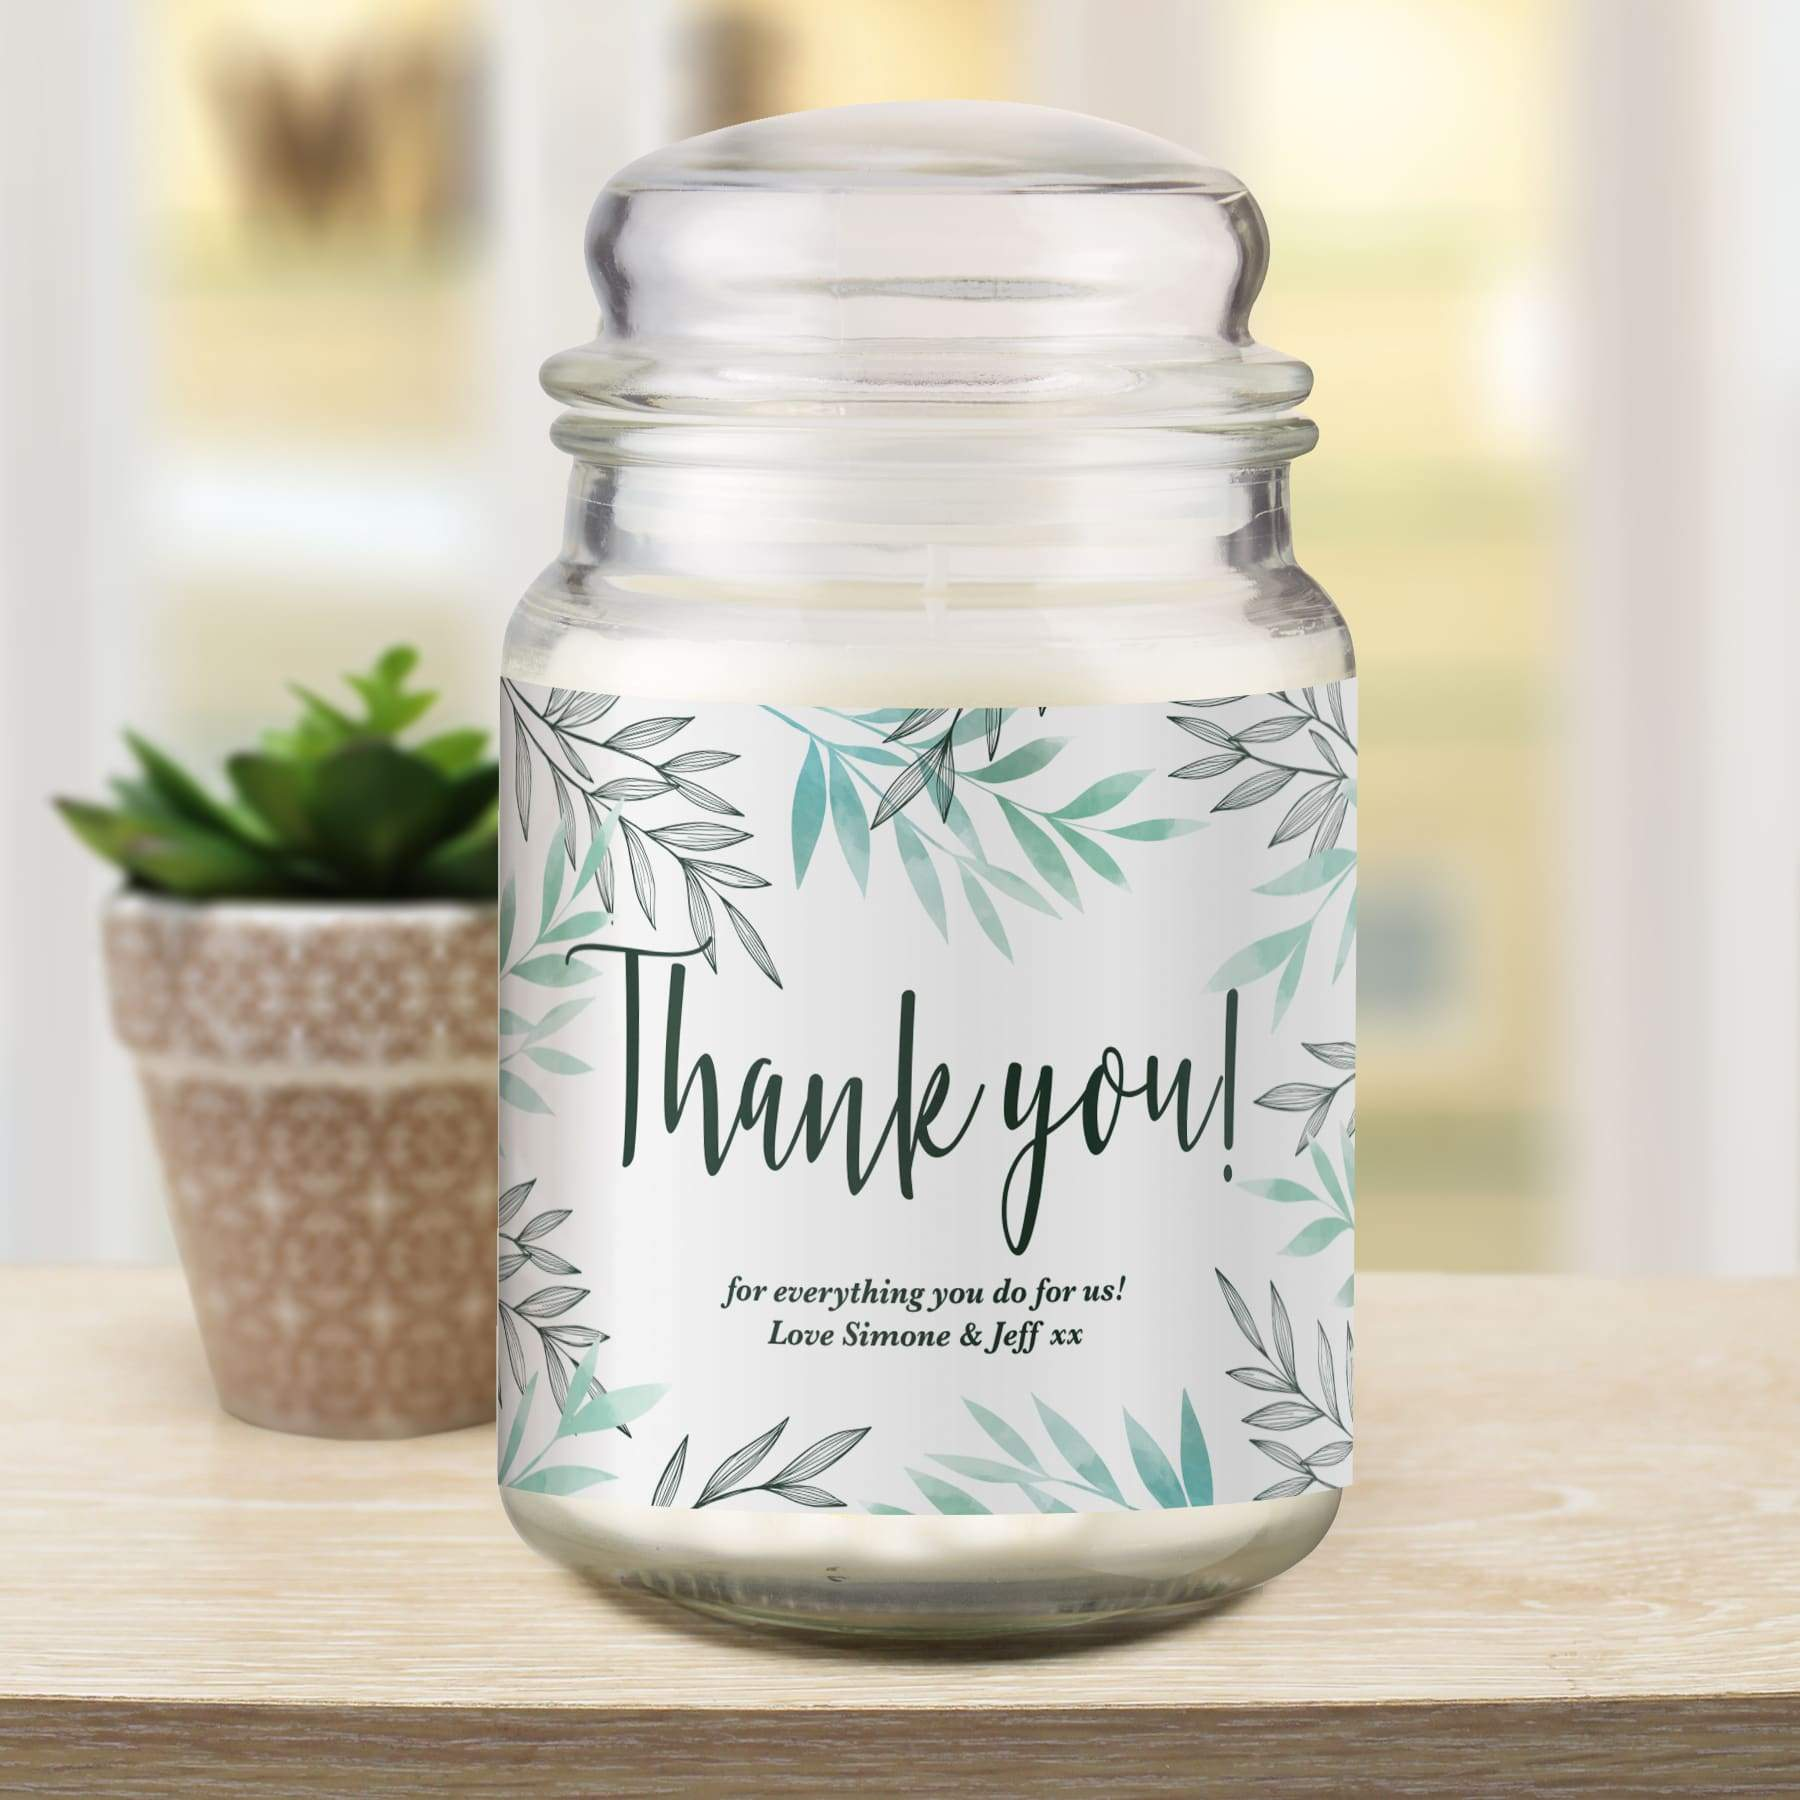 collections/4004768-Floral-Thank-You-Candle-Jar-3-1.jpg